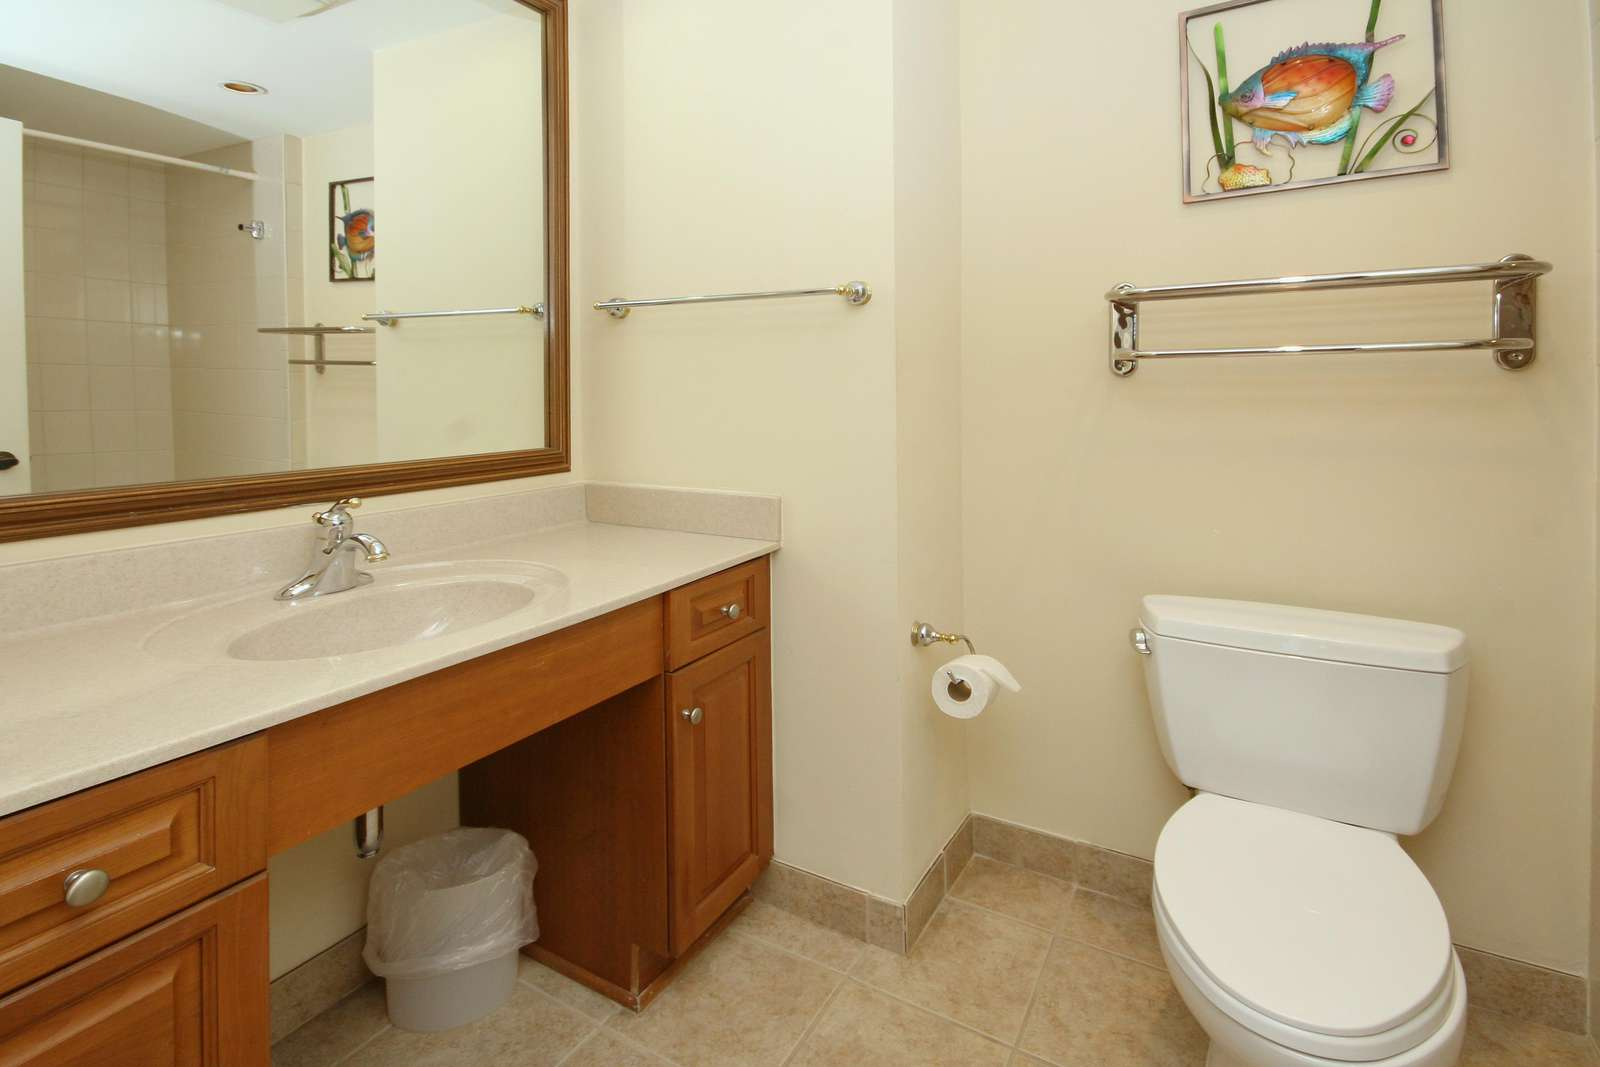 3rd Bedroom private bathroom